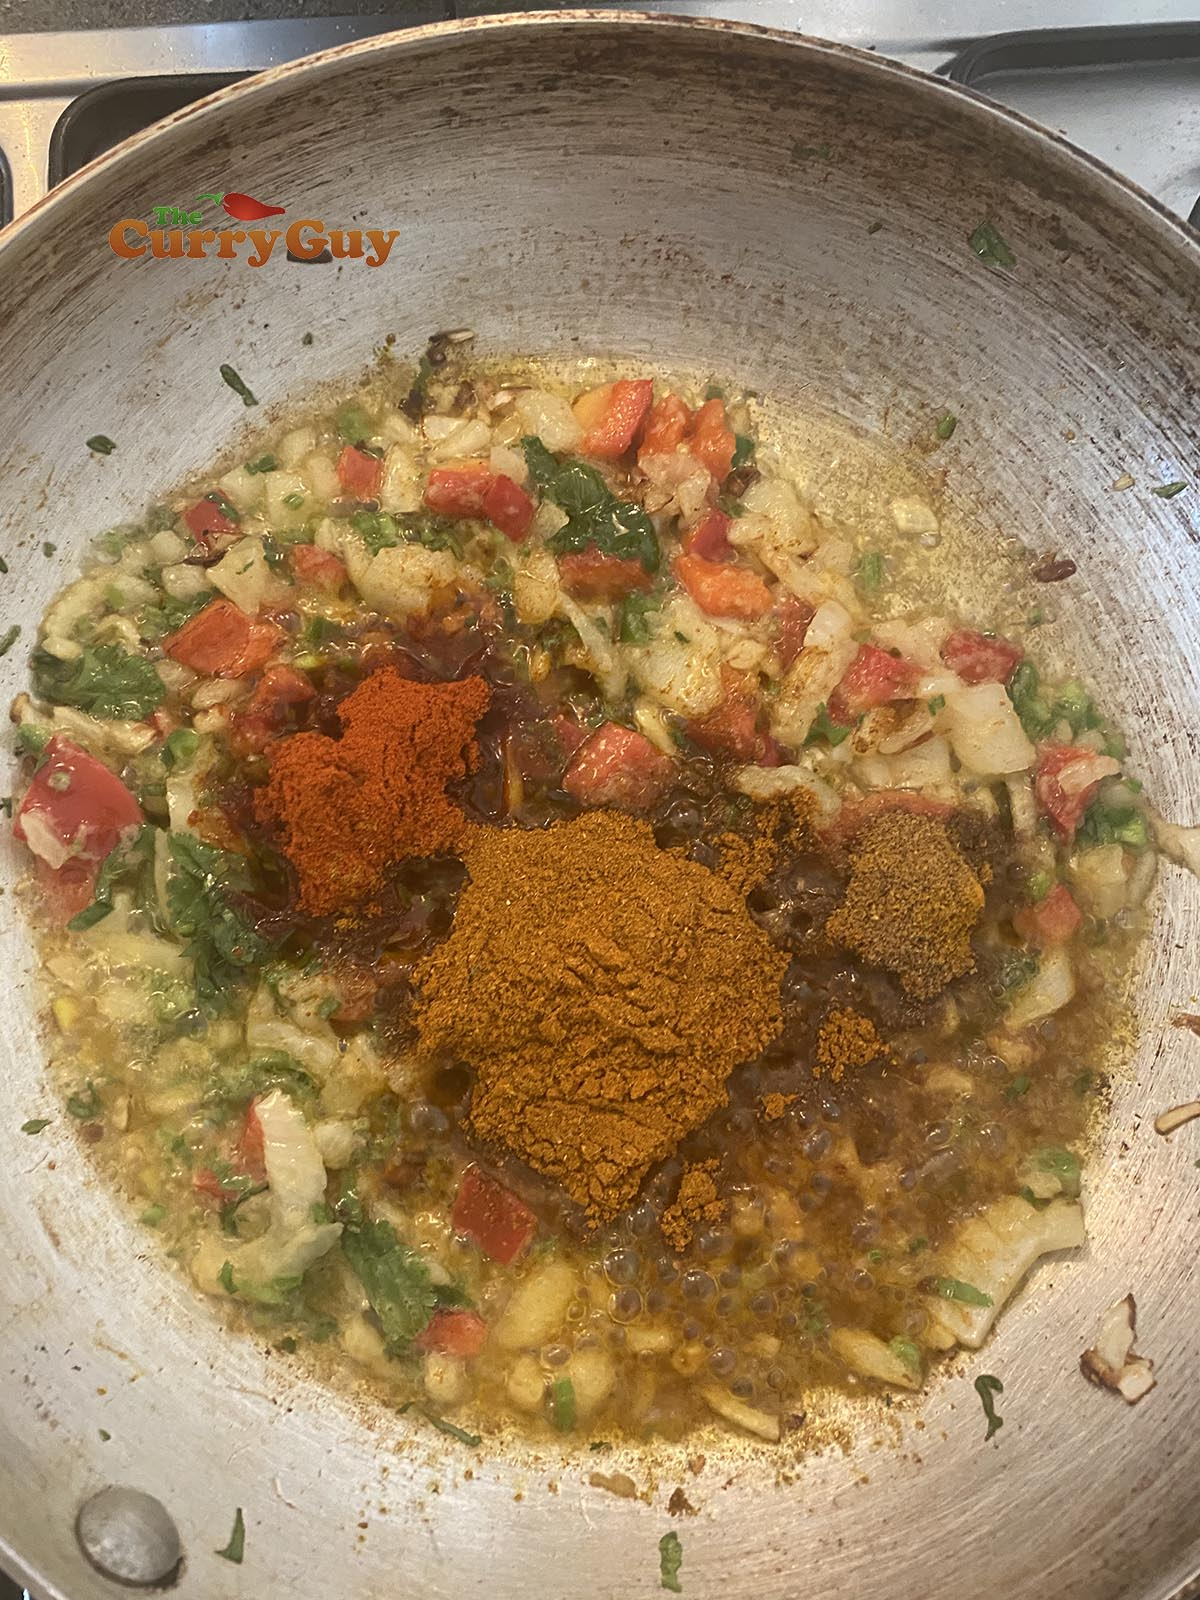 Adding ground spices to the pan